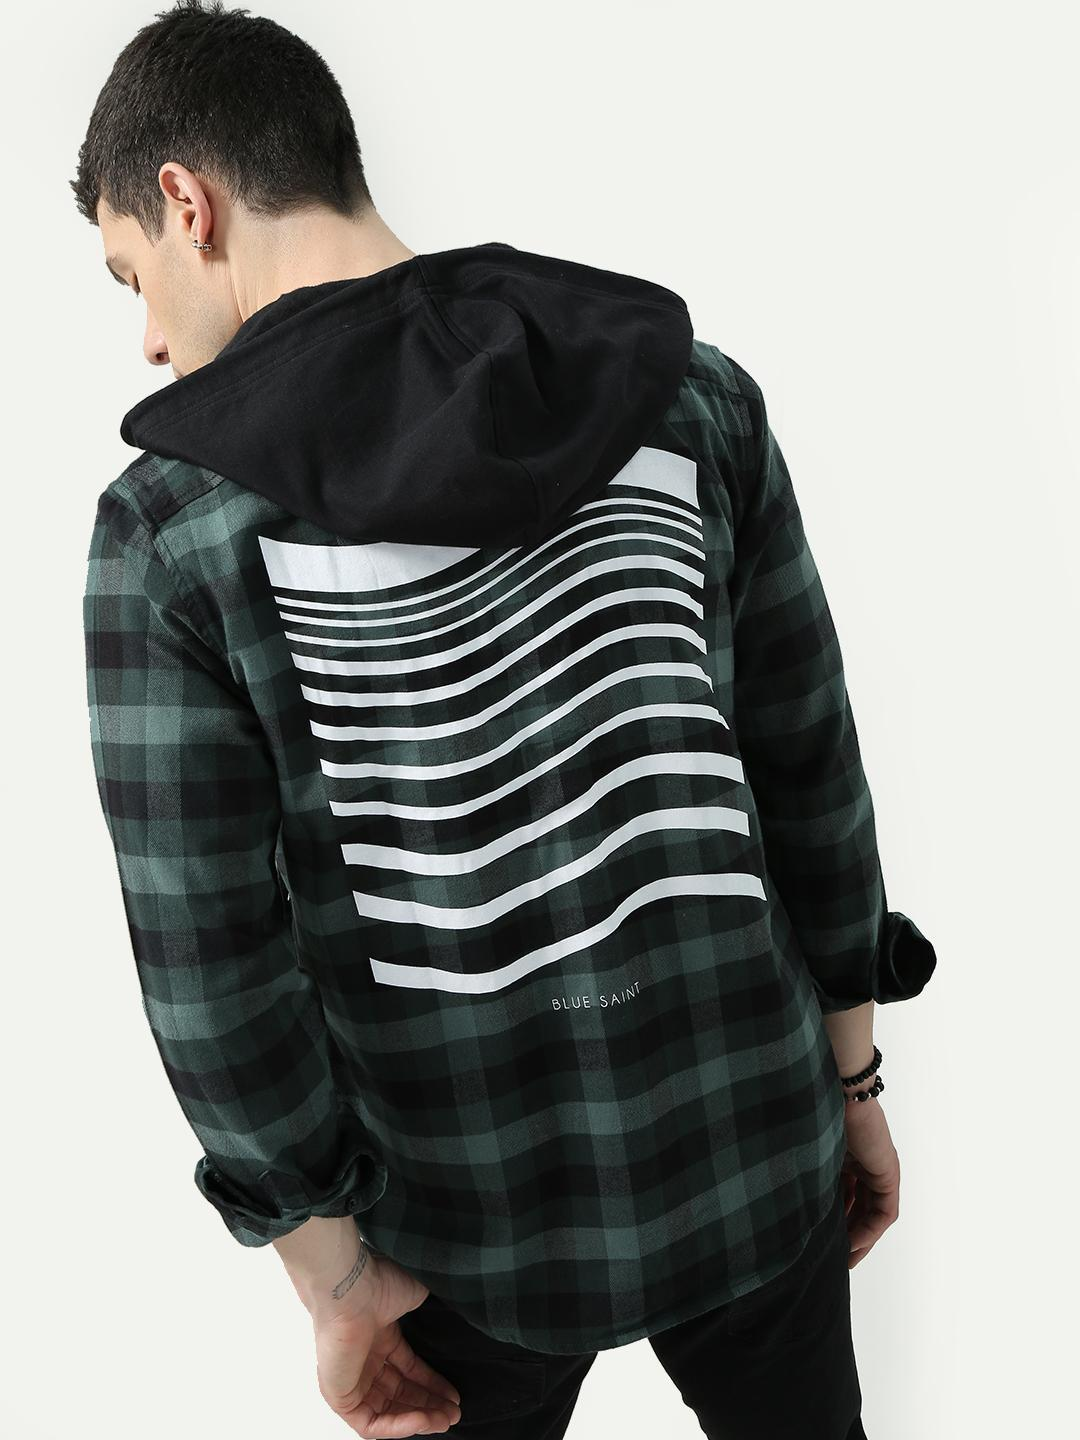 Blue Saint Green/Black Check Shirt with Contrast Hood 1